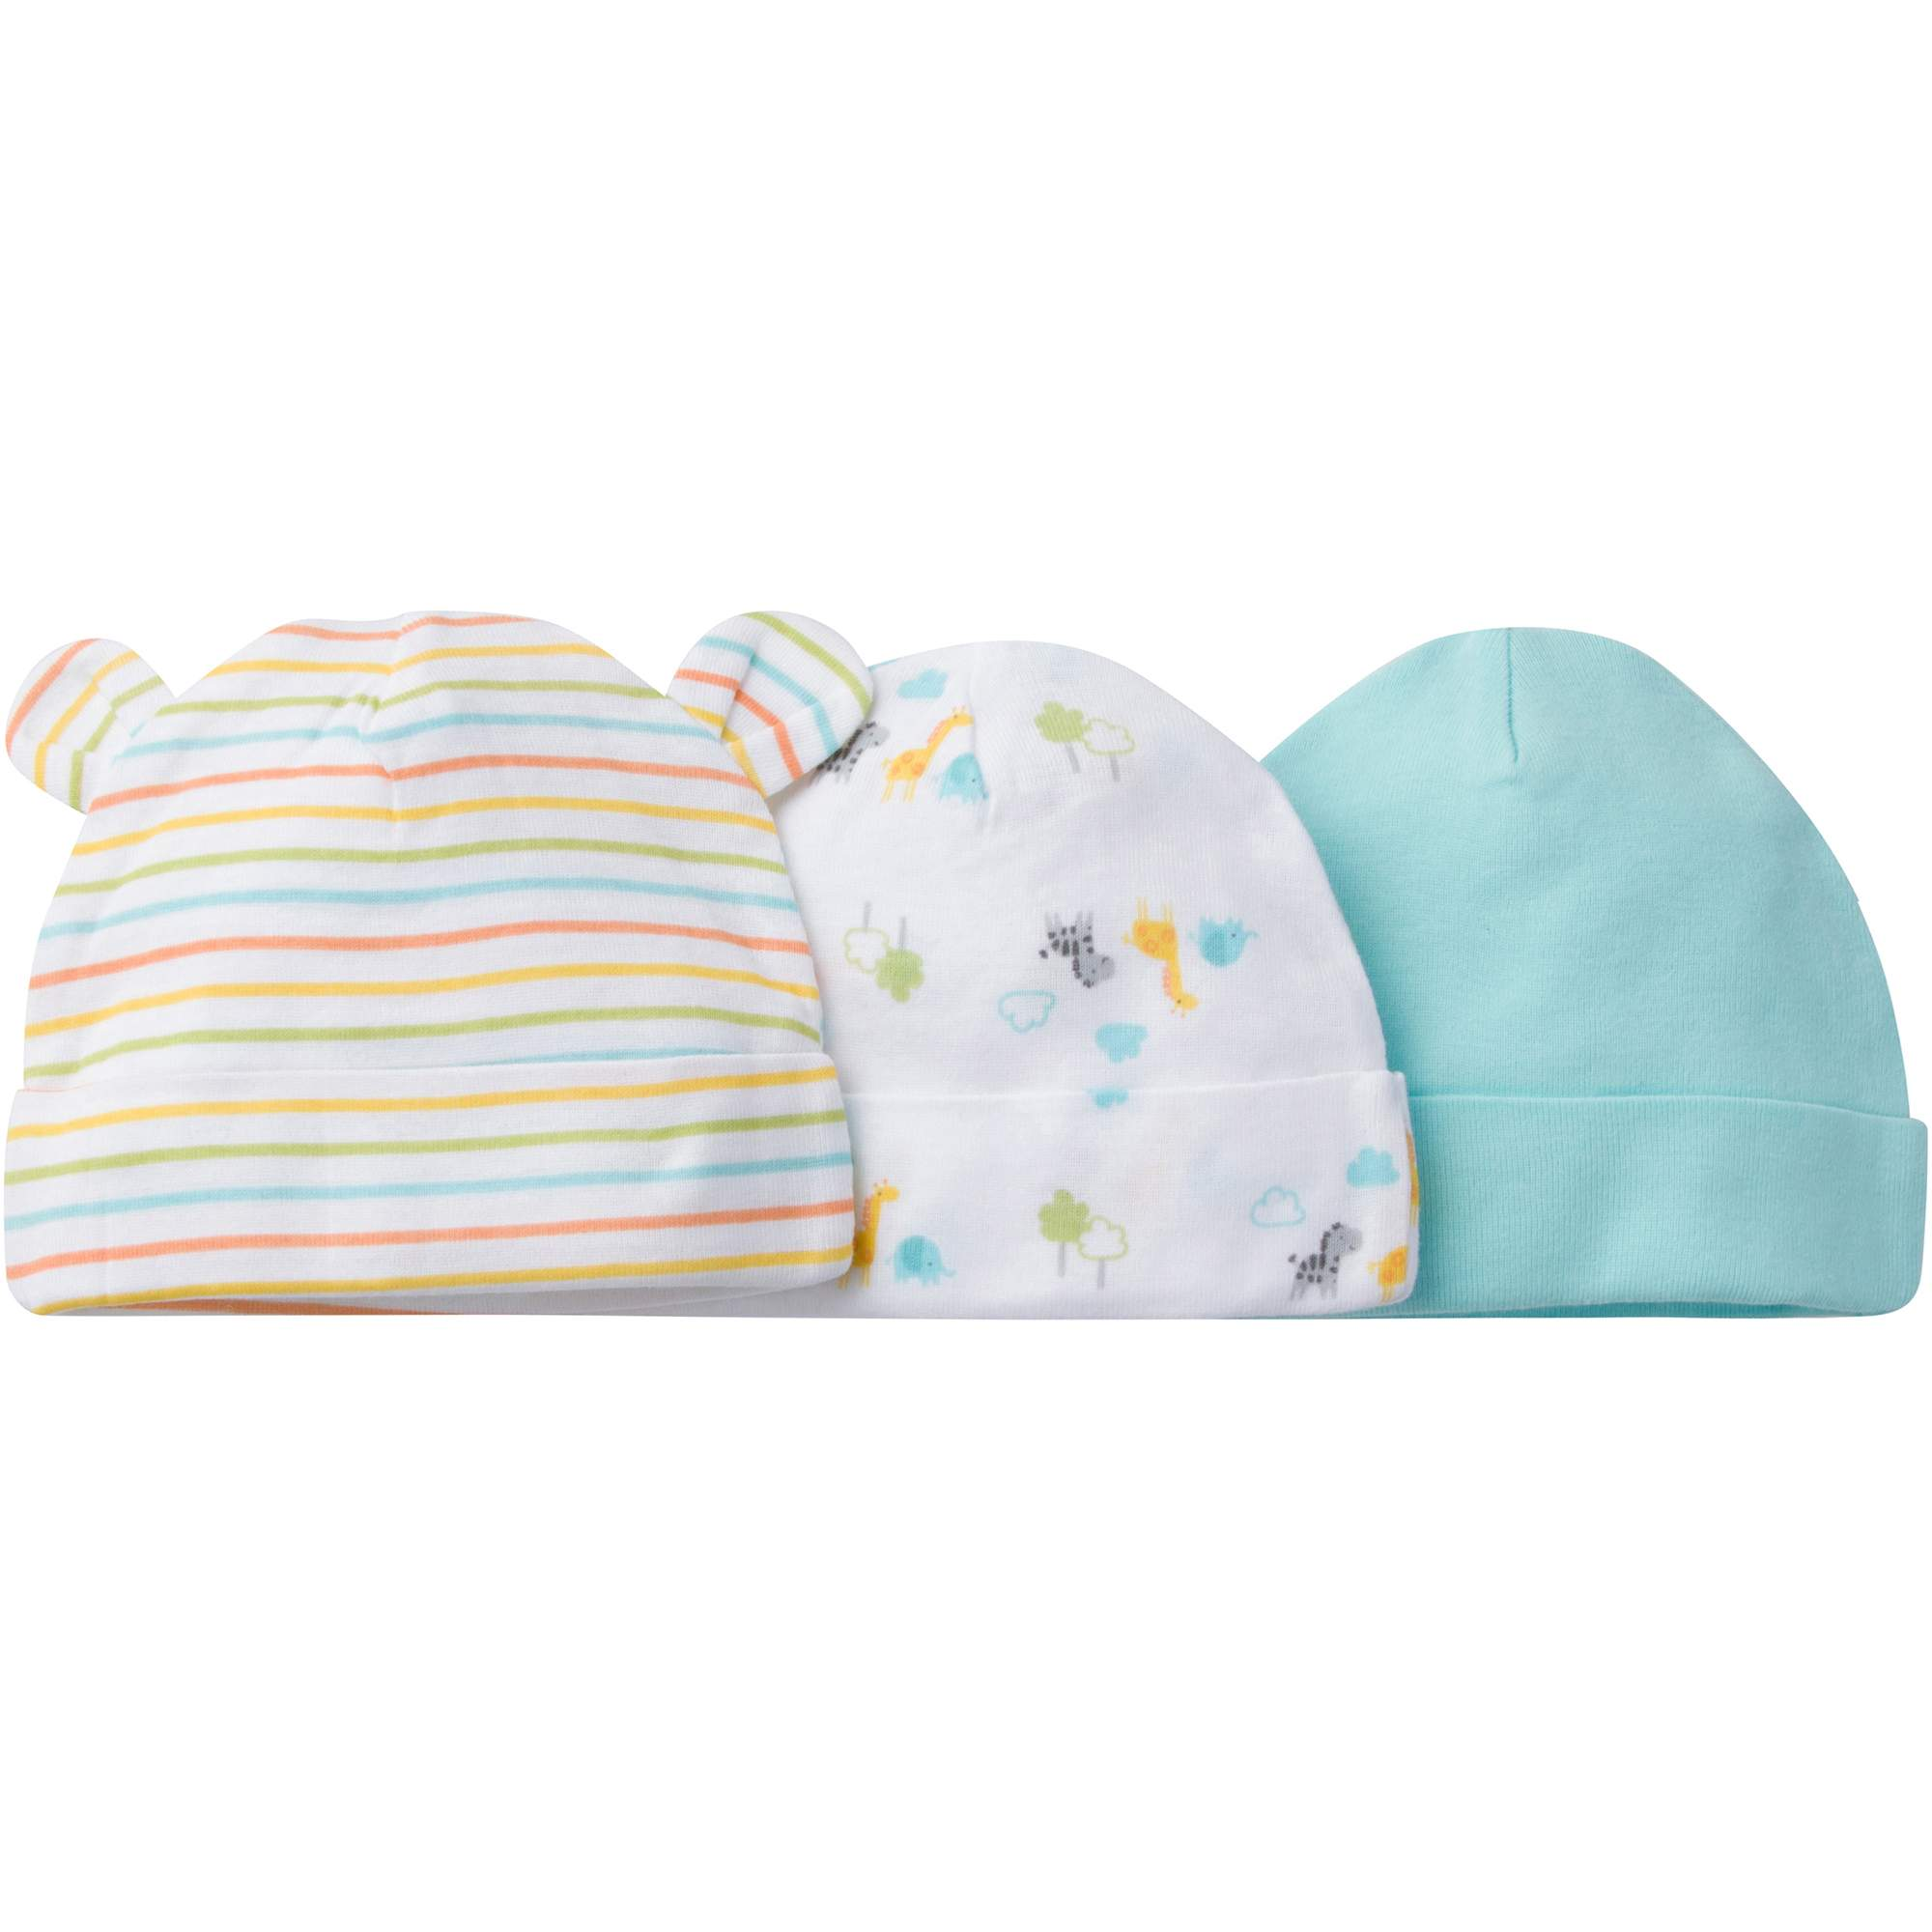 Image of Gerber Newborn Baby Boy or Girl Unisex Assorted Caps, 3-Pack